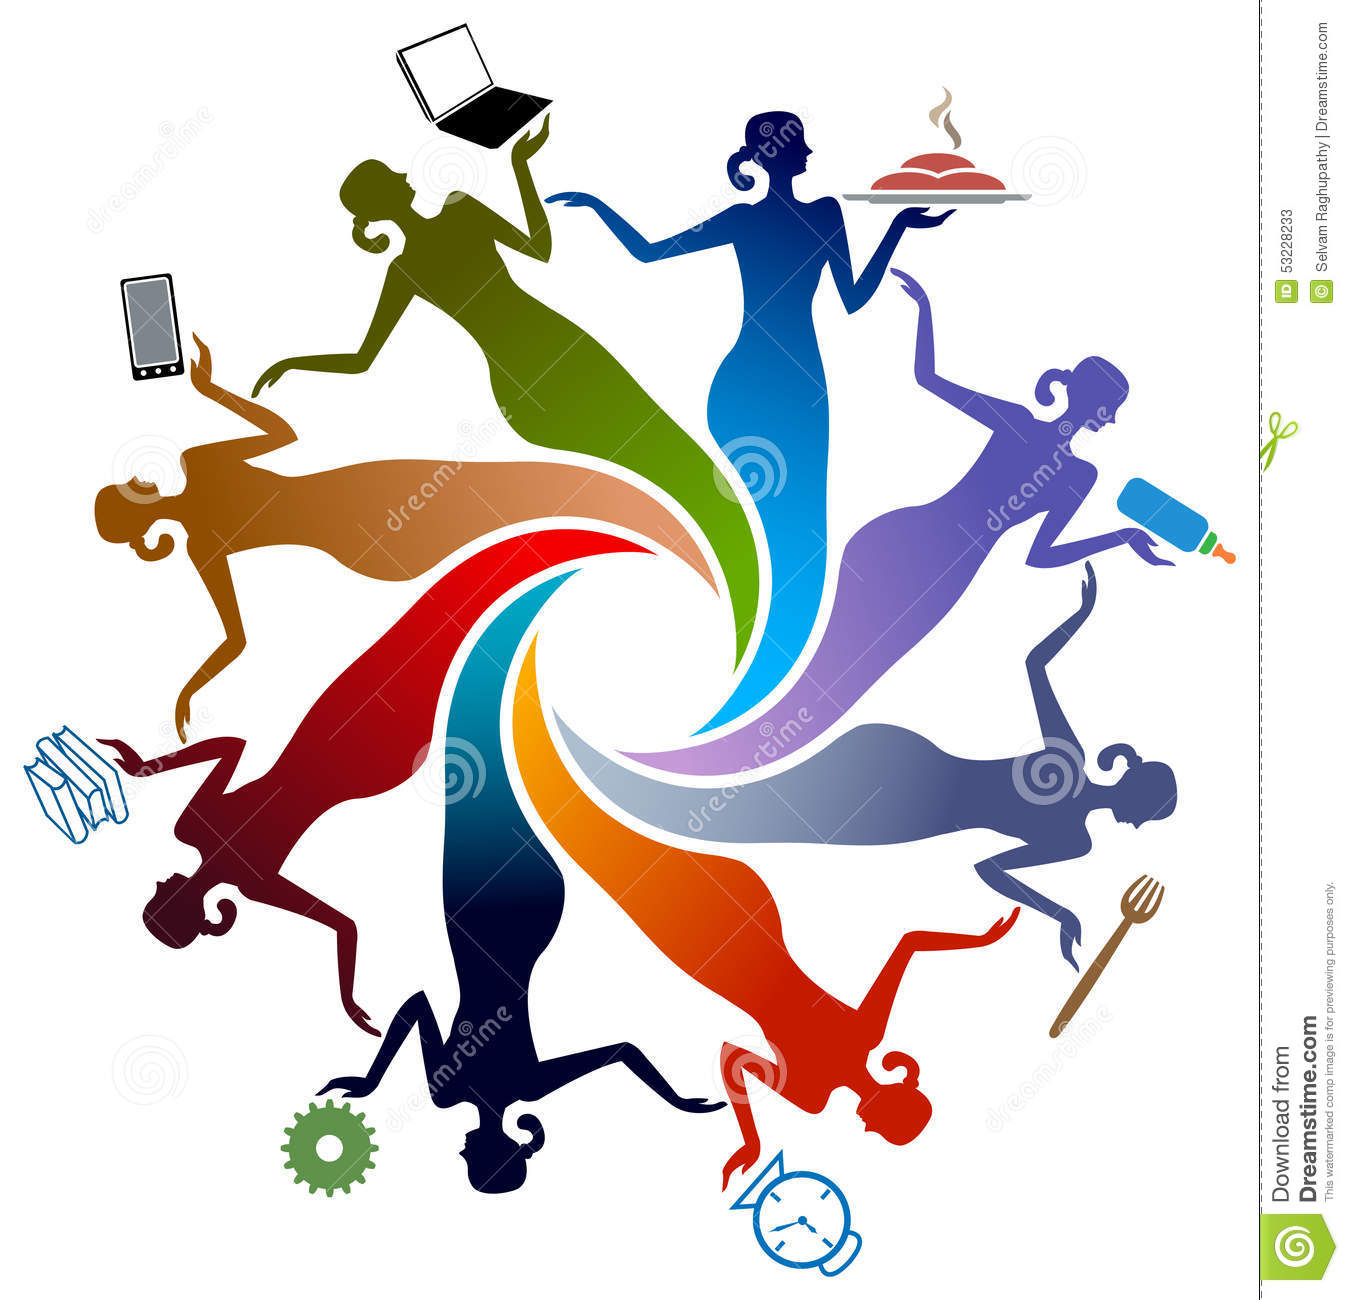 Activities of women stock vector. Image of connection ...